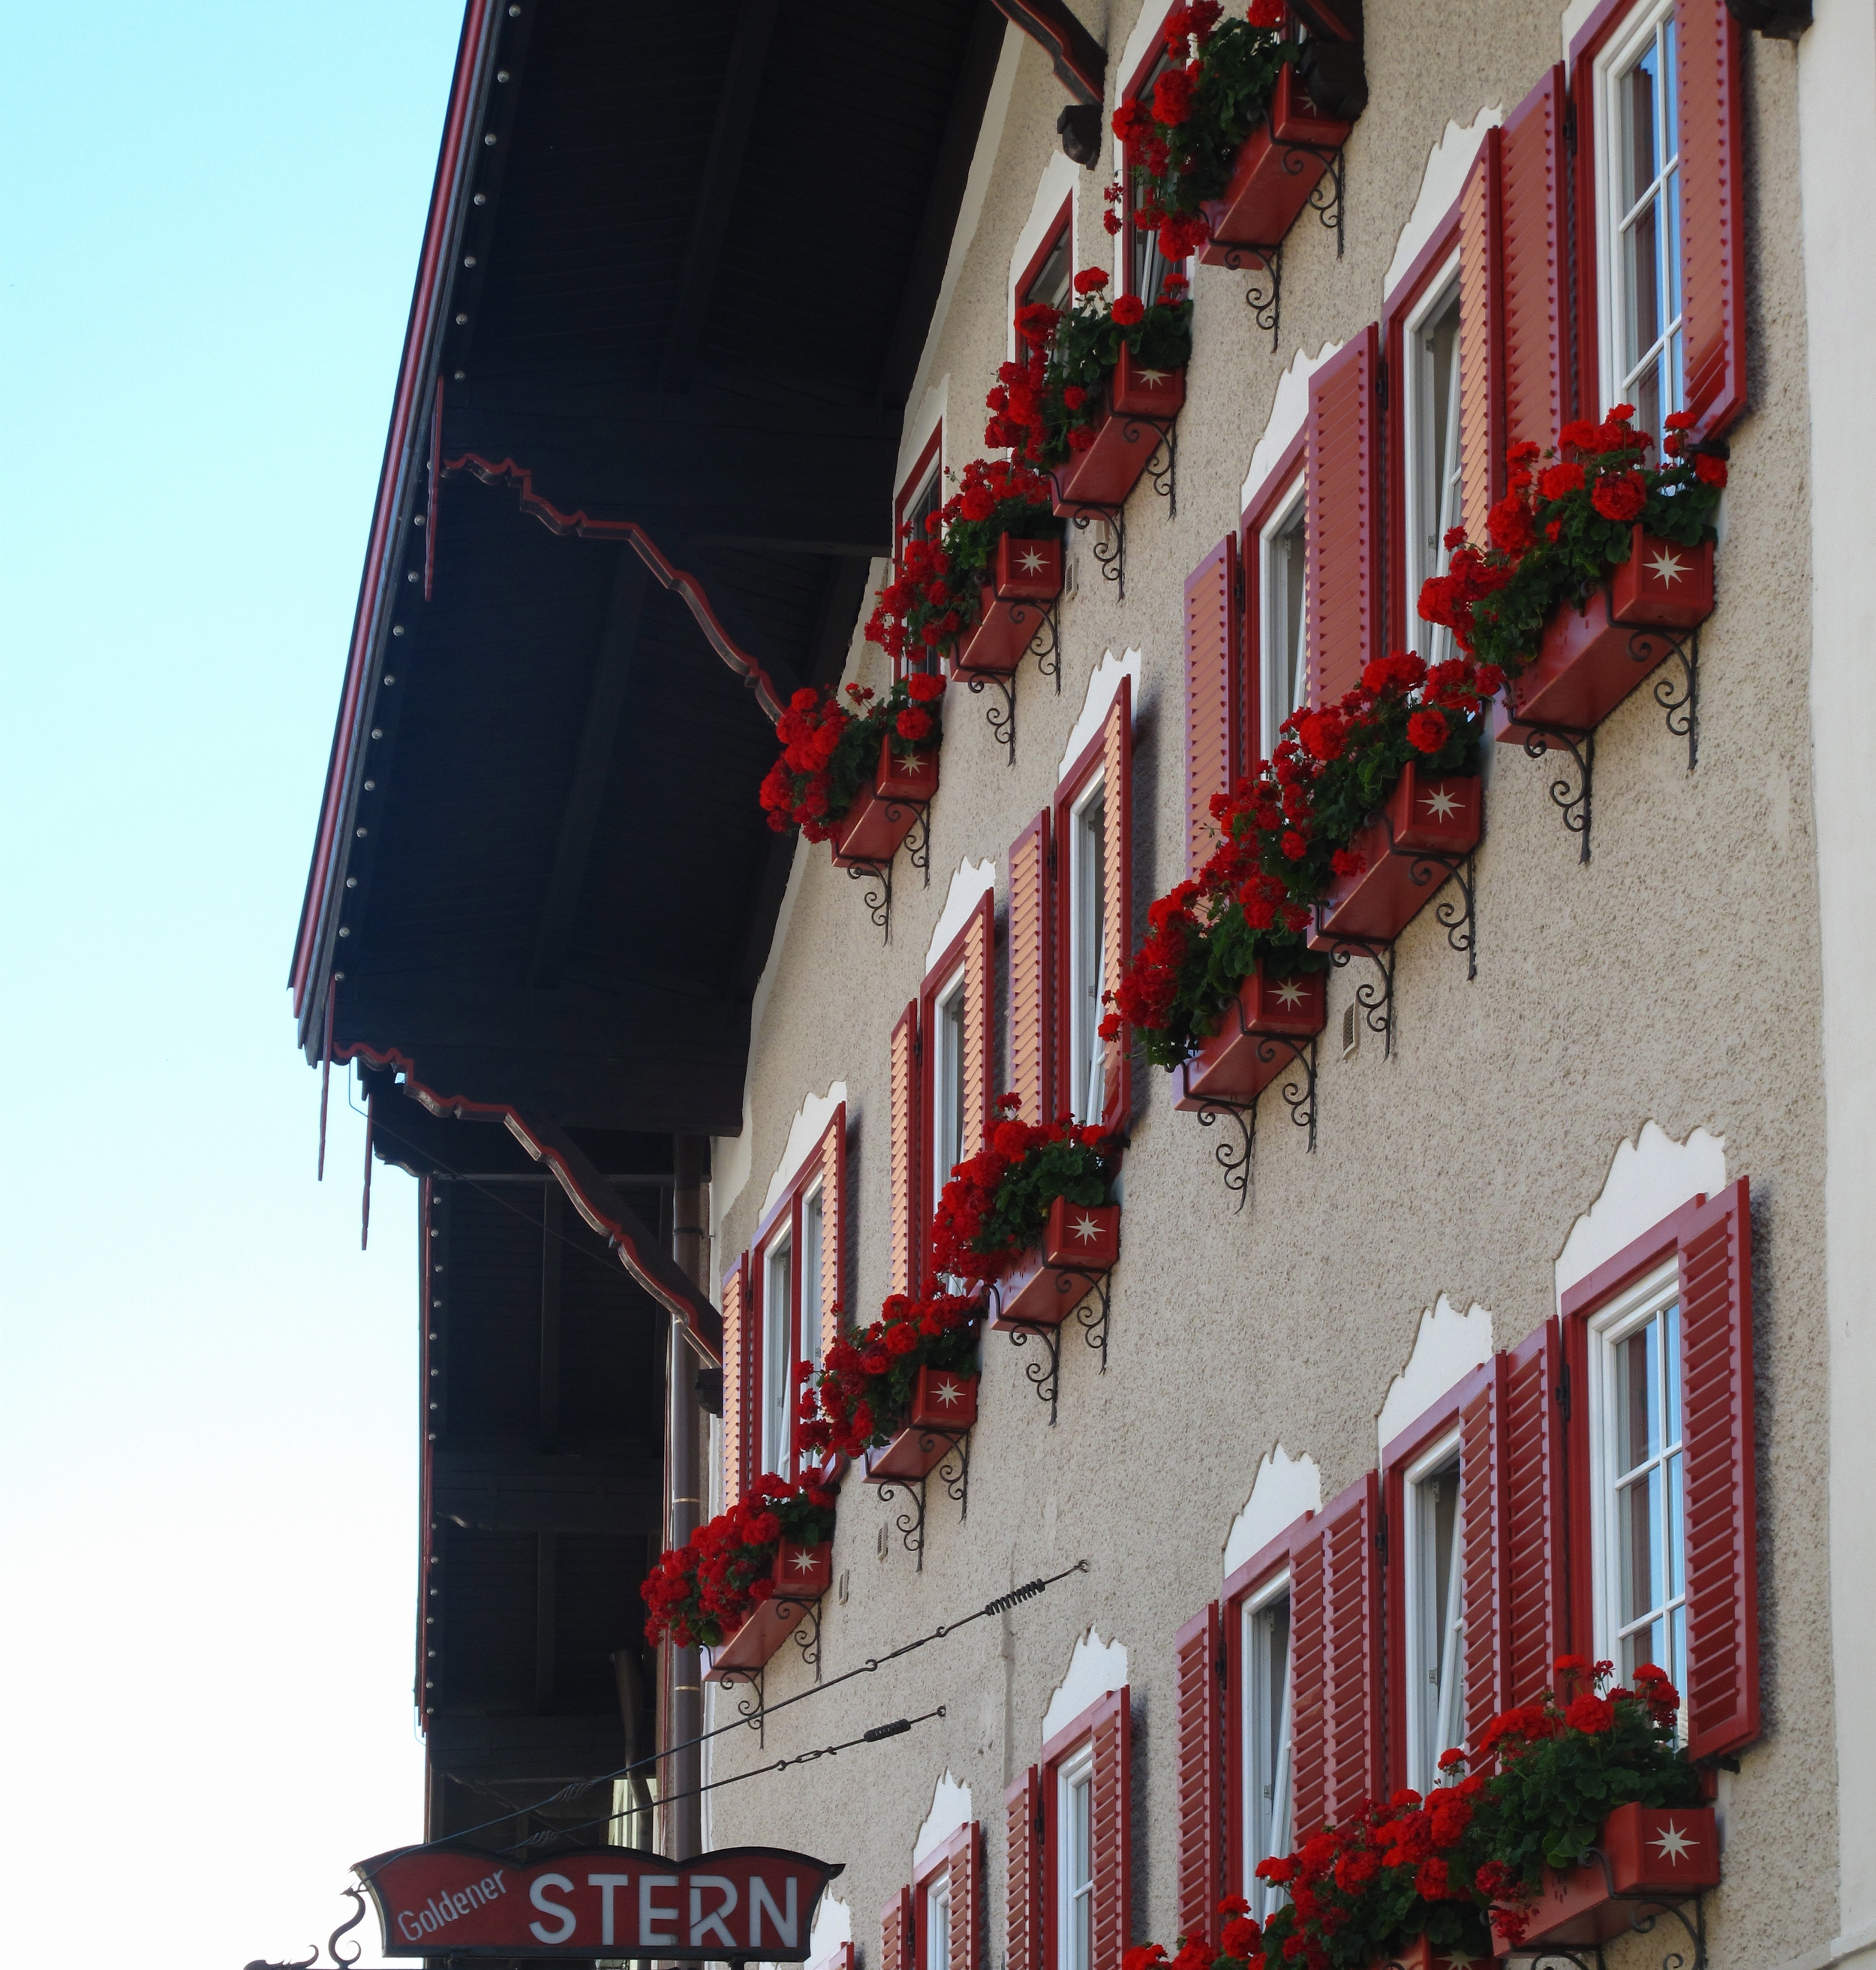 Austrian hotel with window boxes full of red flowers.